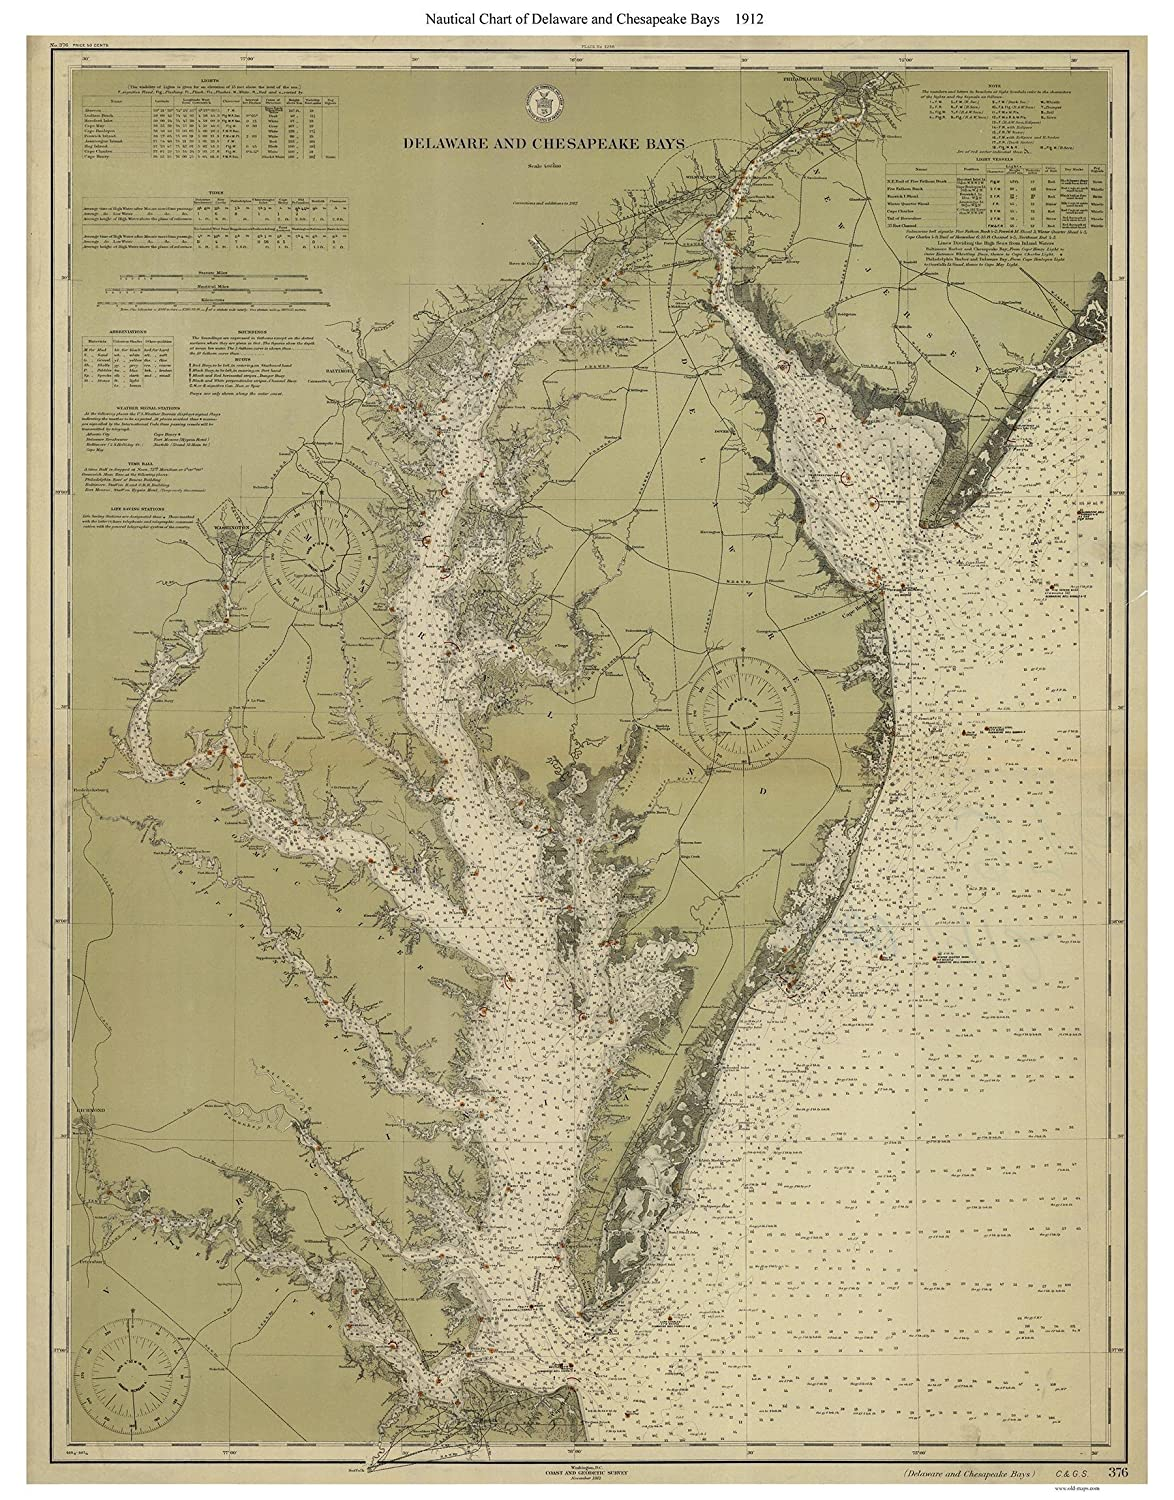 Amazon.com: Delaware and Chesapeake Bays (Delmarva Peninsula ... on virginia peninsula, adirondack high peaks map, dominion power service area map, rehoboth beach, delaware map, california shipwreck map, virginia map, northeast us road map, indian river, dewey beach, bethany beach neighborhood map, cape henlopen, olde england map, west va map, east coast map, long island map, state of deseret, gloucester county va map, sussex county, delaware bay, bethany beach, district of columbia statehood movement, middle peninsula, mexico yucatan peninsula map, georgetown de map, new orleans map, md beaches map, lake county map, dc area and surrounding area map, 51st state, maryland map, state of franklin,